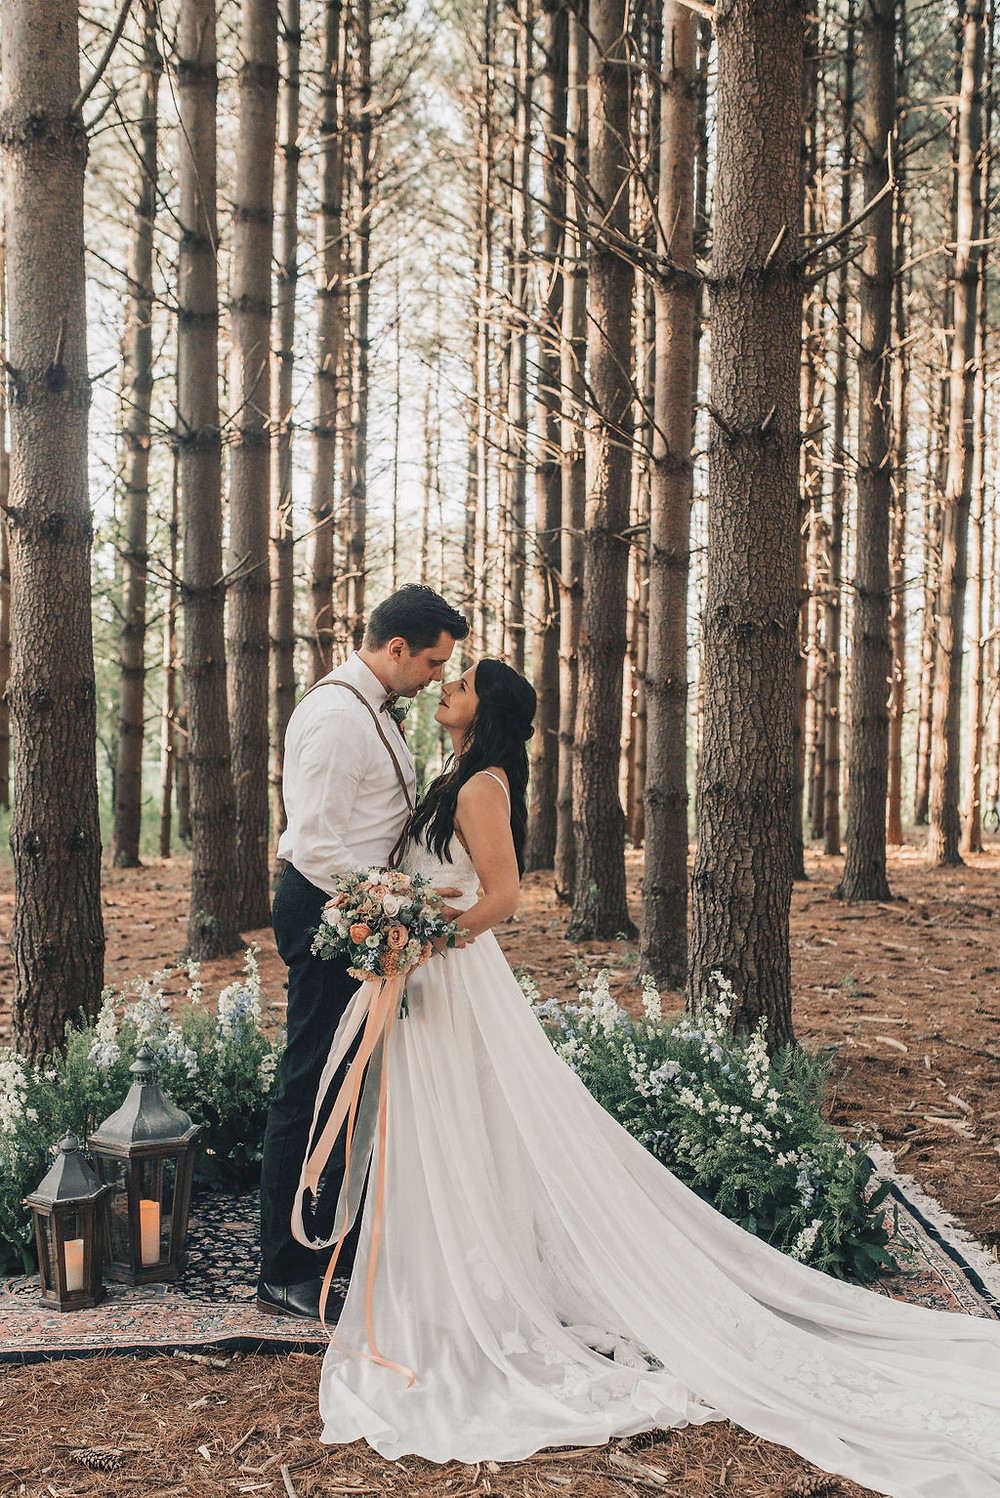 Towering pines are the backdrop to a tiny wedding ceremony in Chicago suburbs